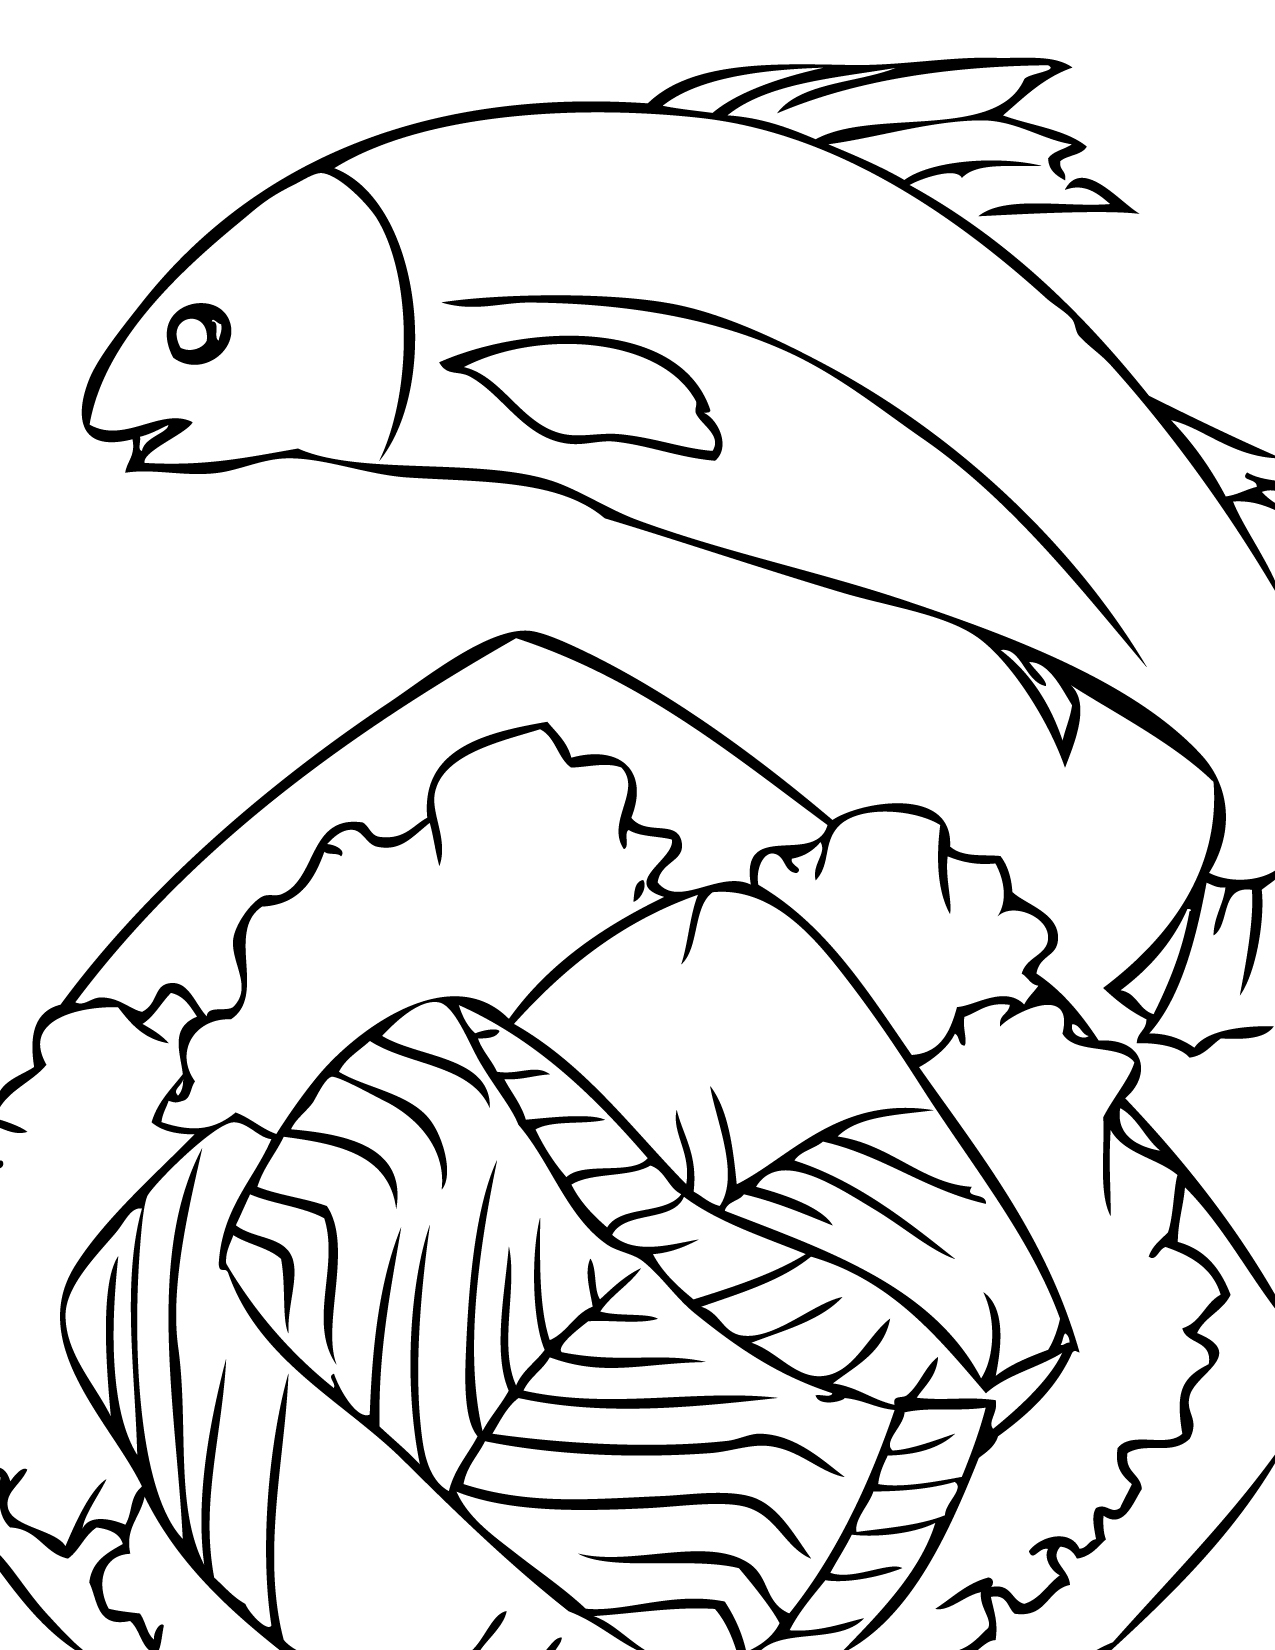 salmon coloring page handipoints